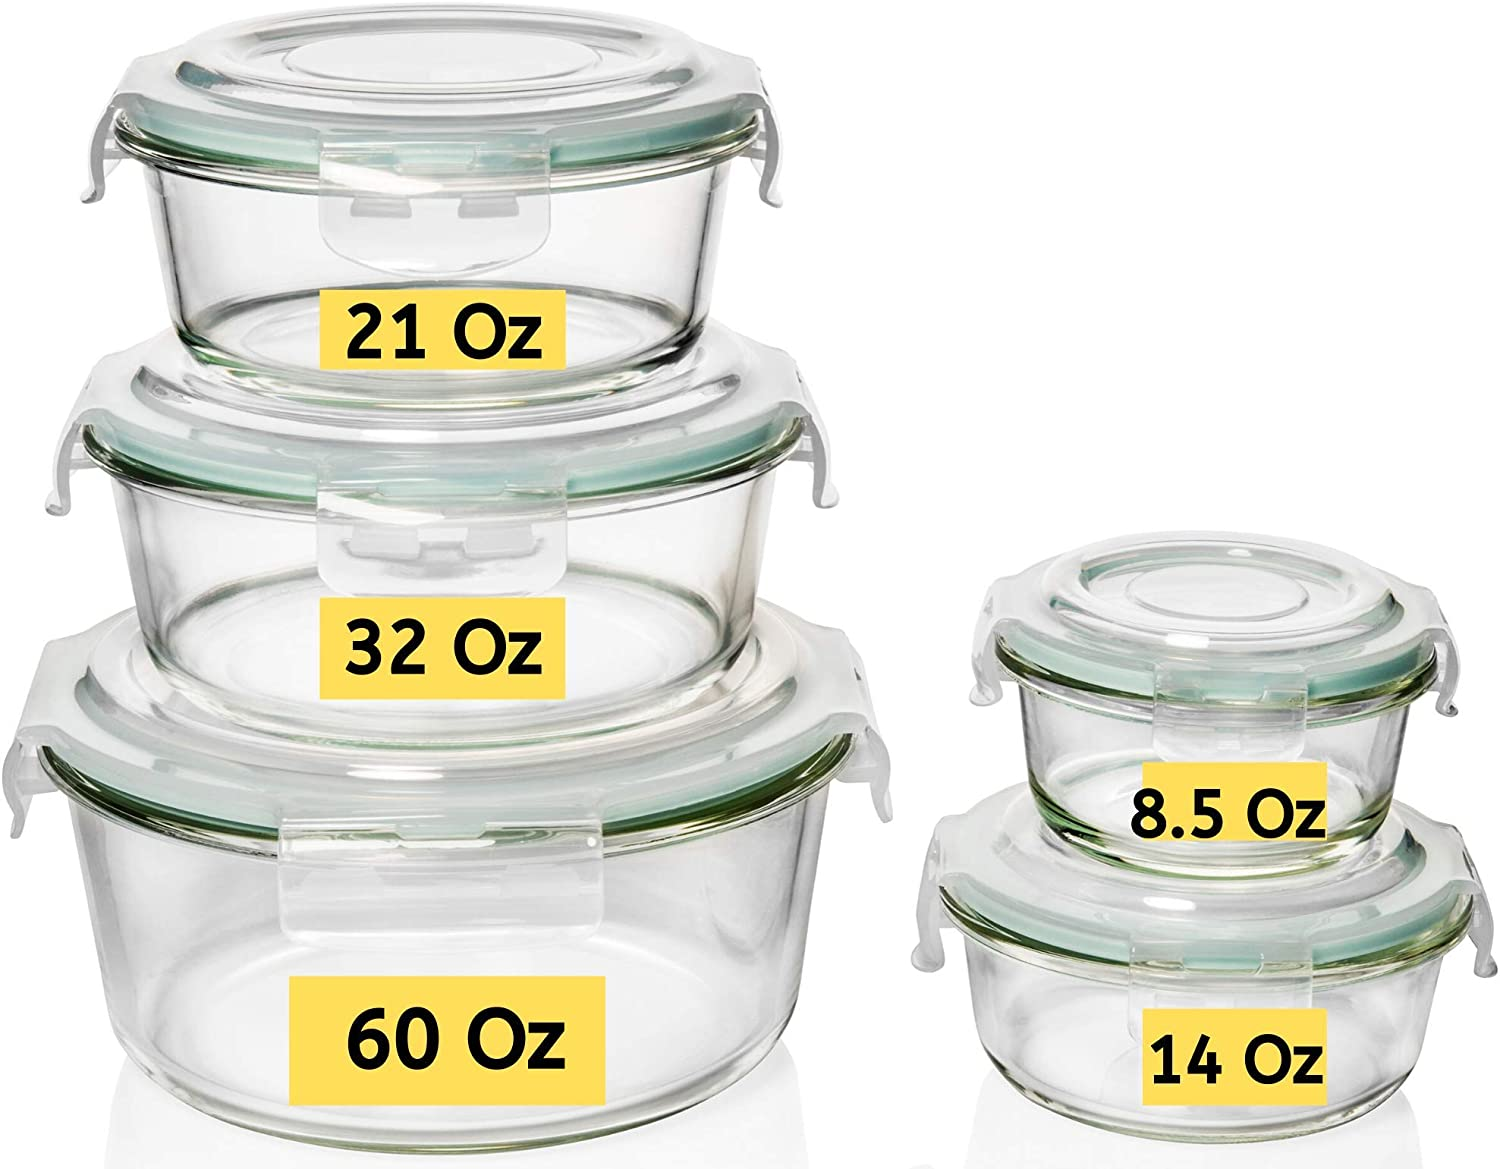 Razab 10 Pc (Set of 5) Round Glass Meal Prep Food Storage Containers with Airtight Locking Lids, For Storing & Serving Food. BPA Free & Leak Proof - Microwave, Dishwasher, Fridge, Freezer & Oven Safe